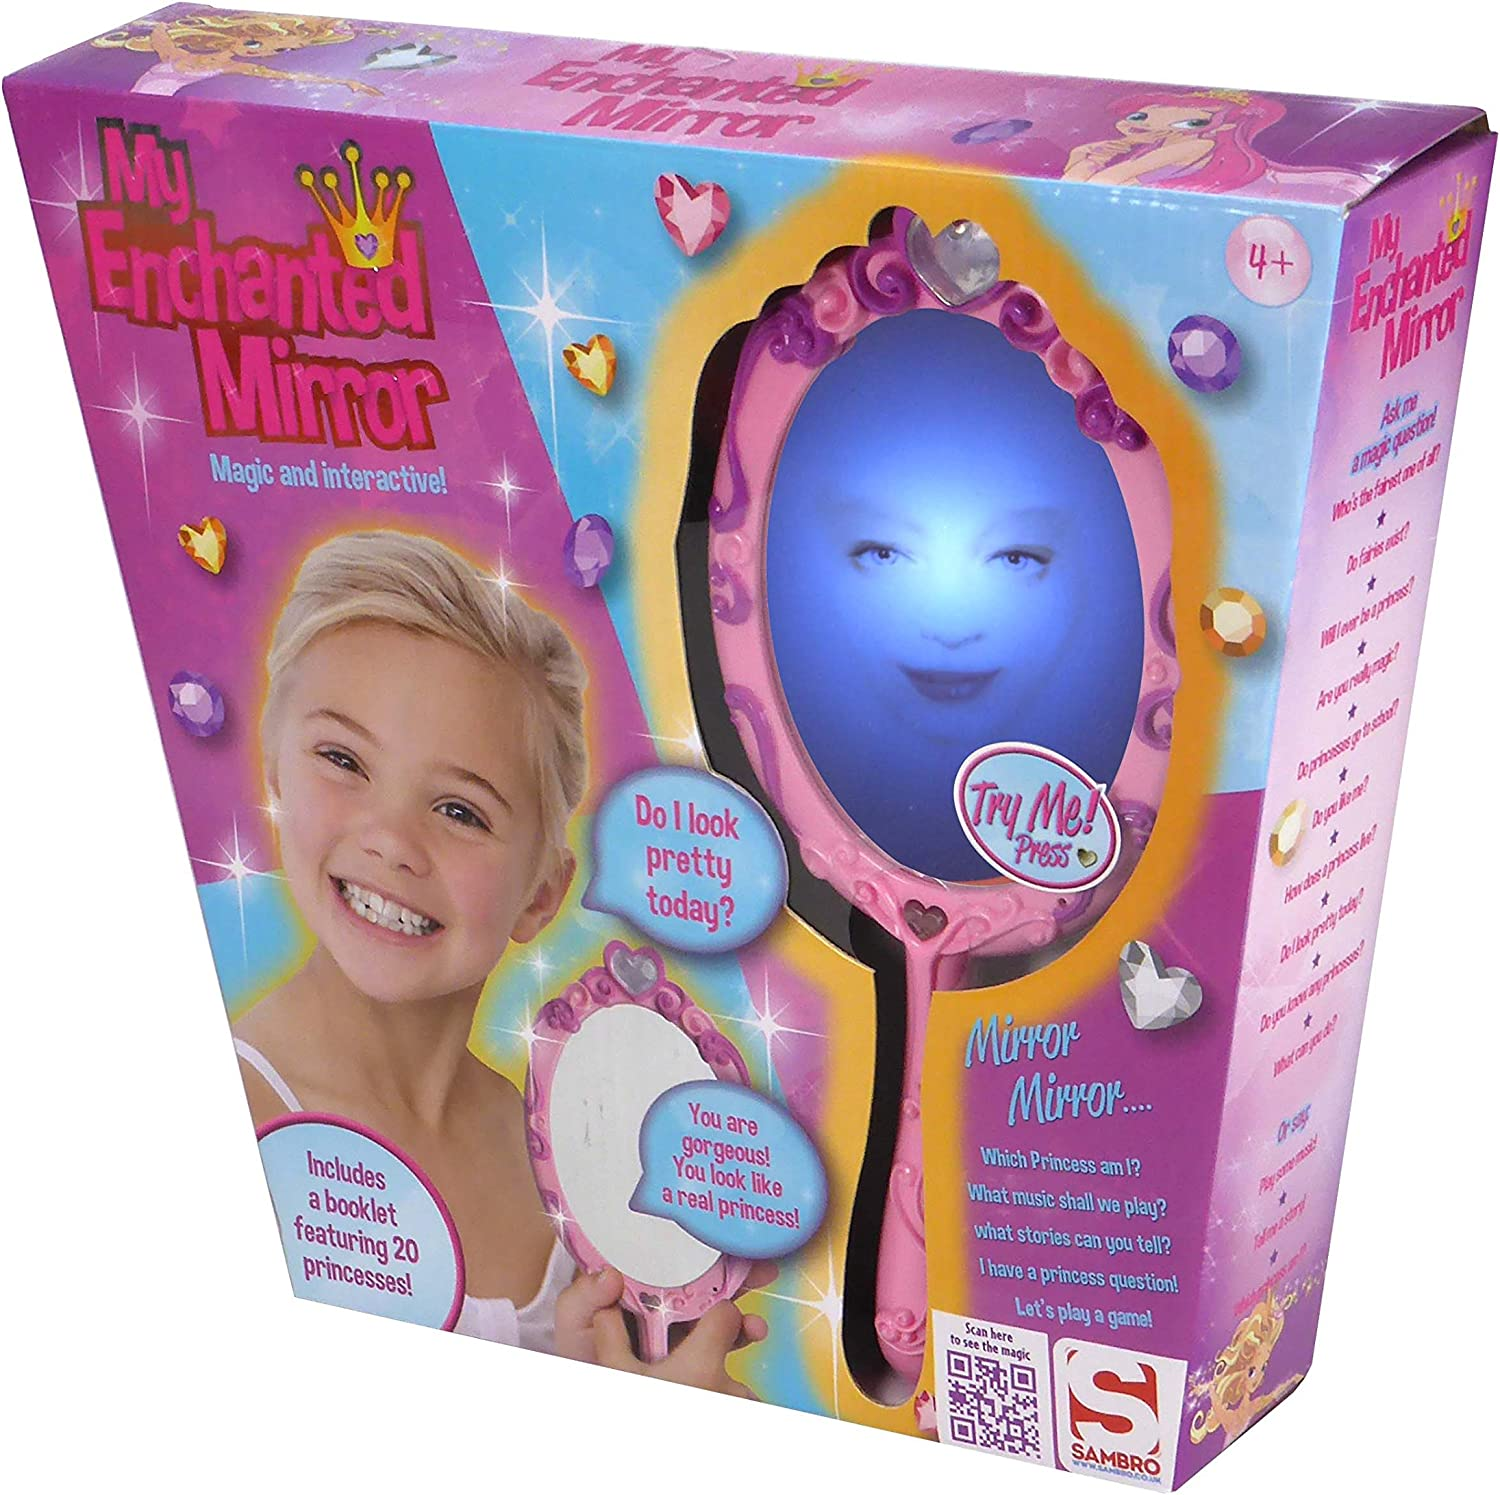 My Enchanted Mirror 876 Nwt170 my Enchanted Mirror by My Enchanted Mirror